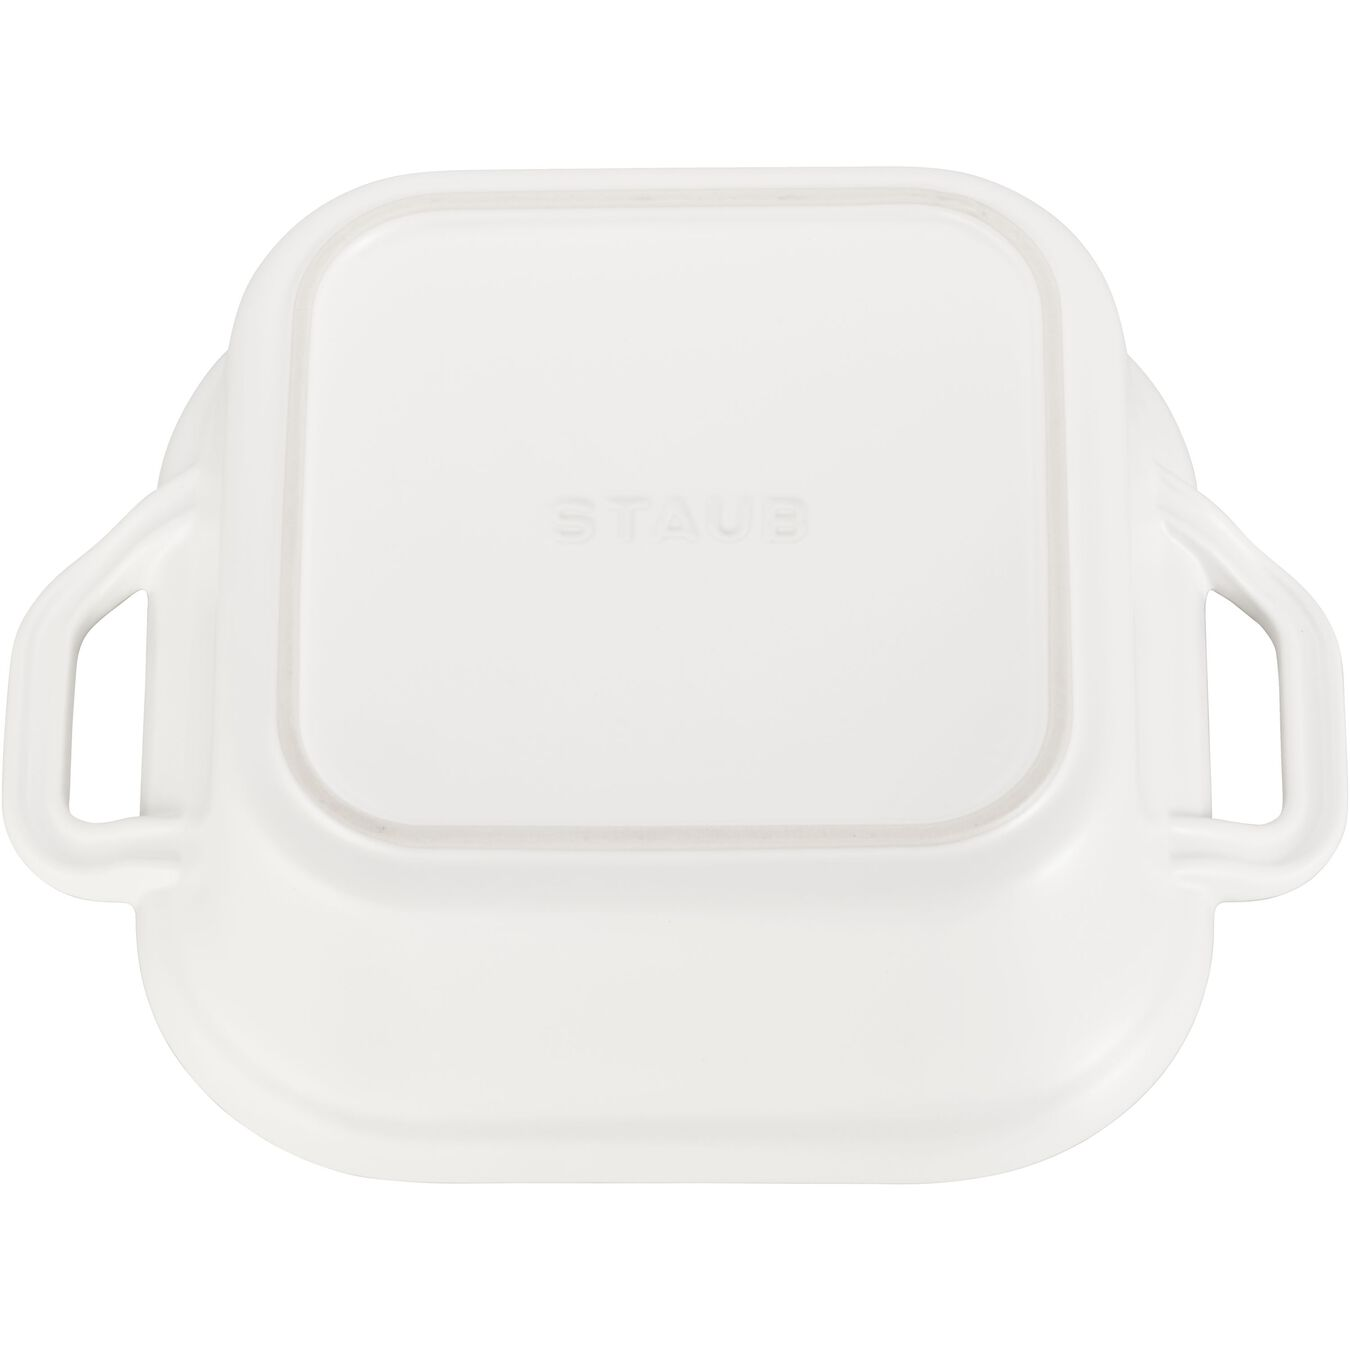 9-inch X 9-inch Square Covered Baking Dish - Matte White,,large 3